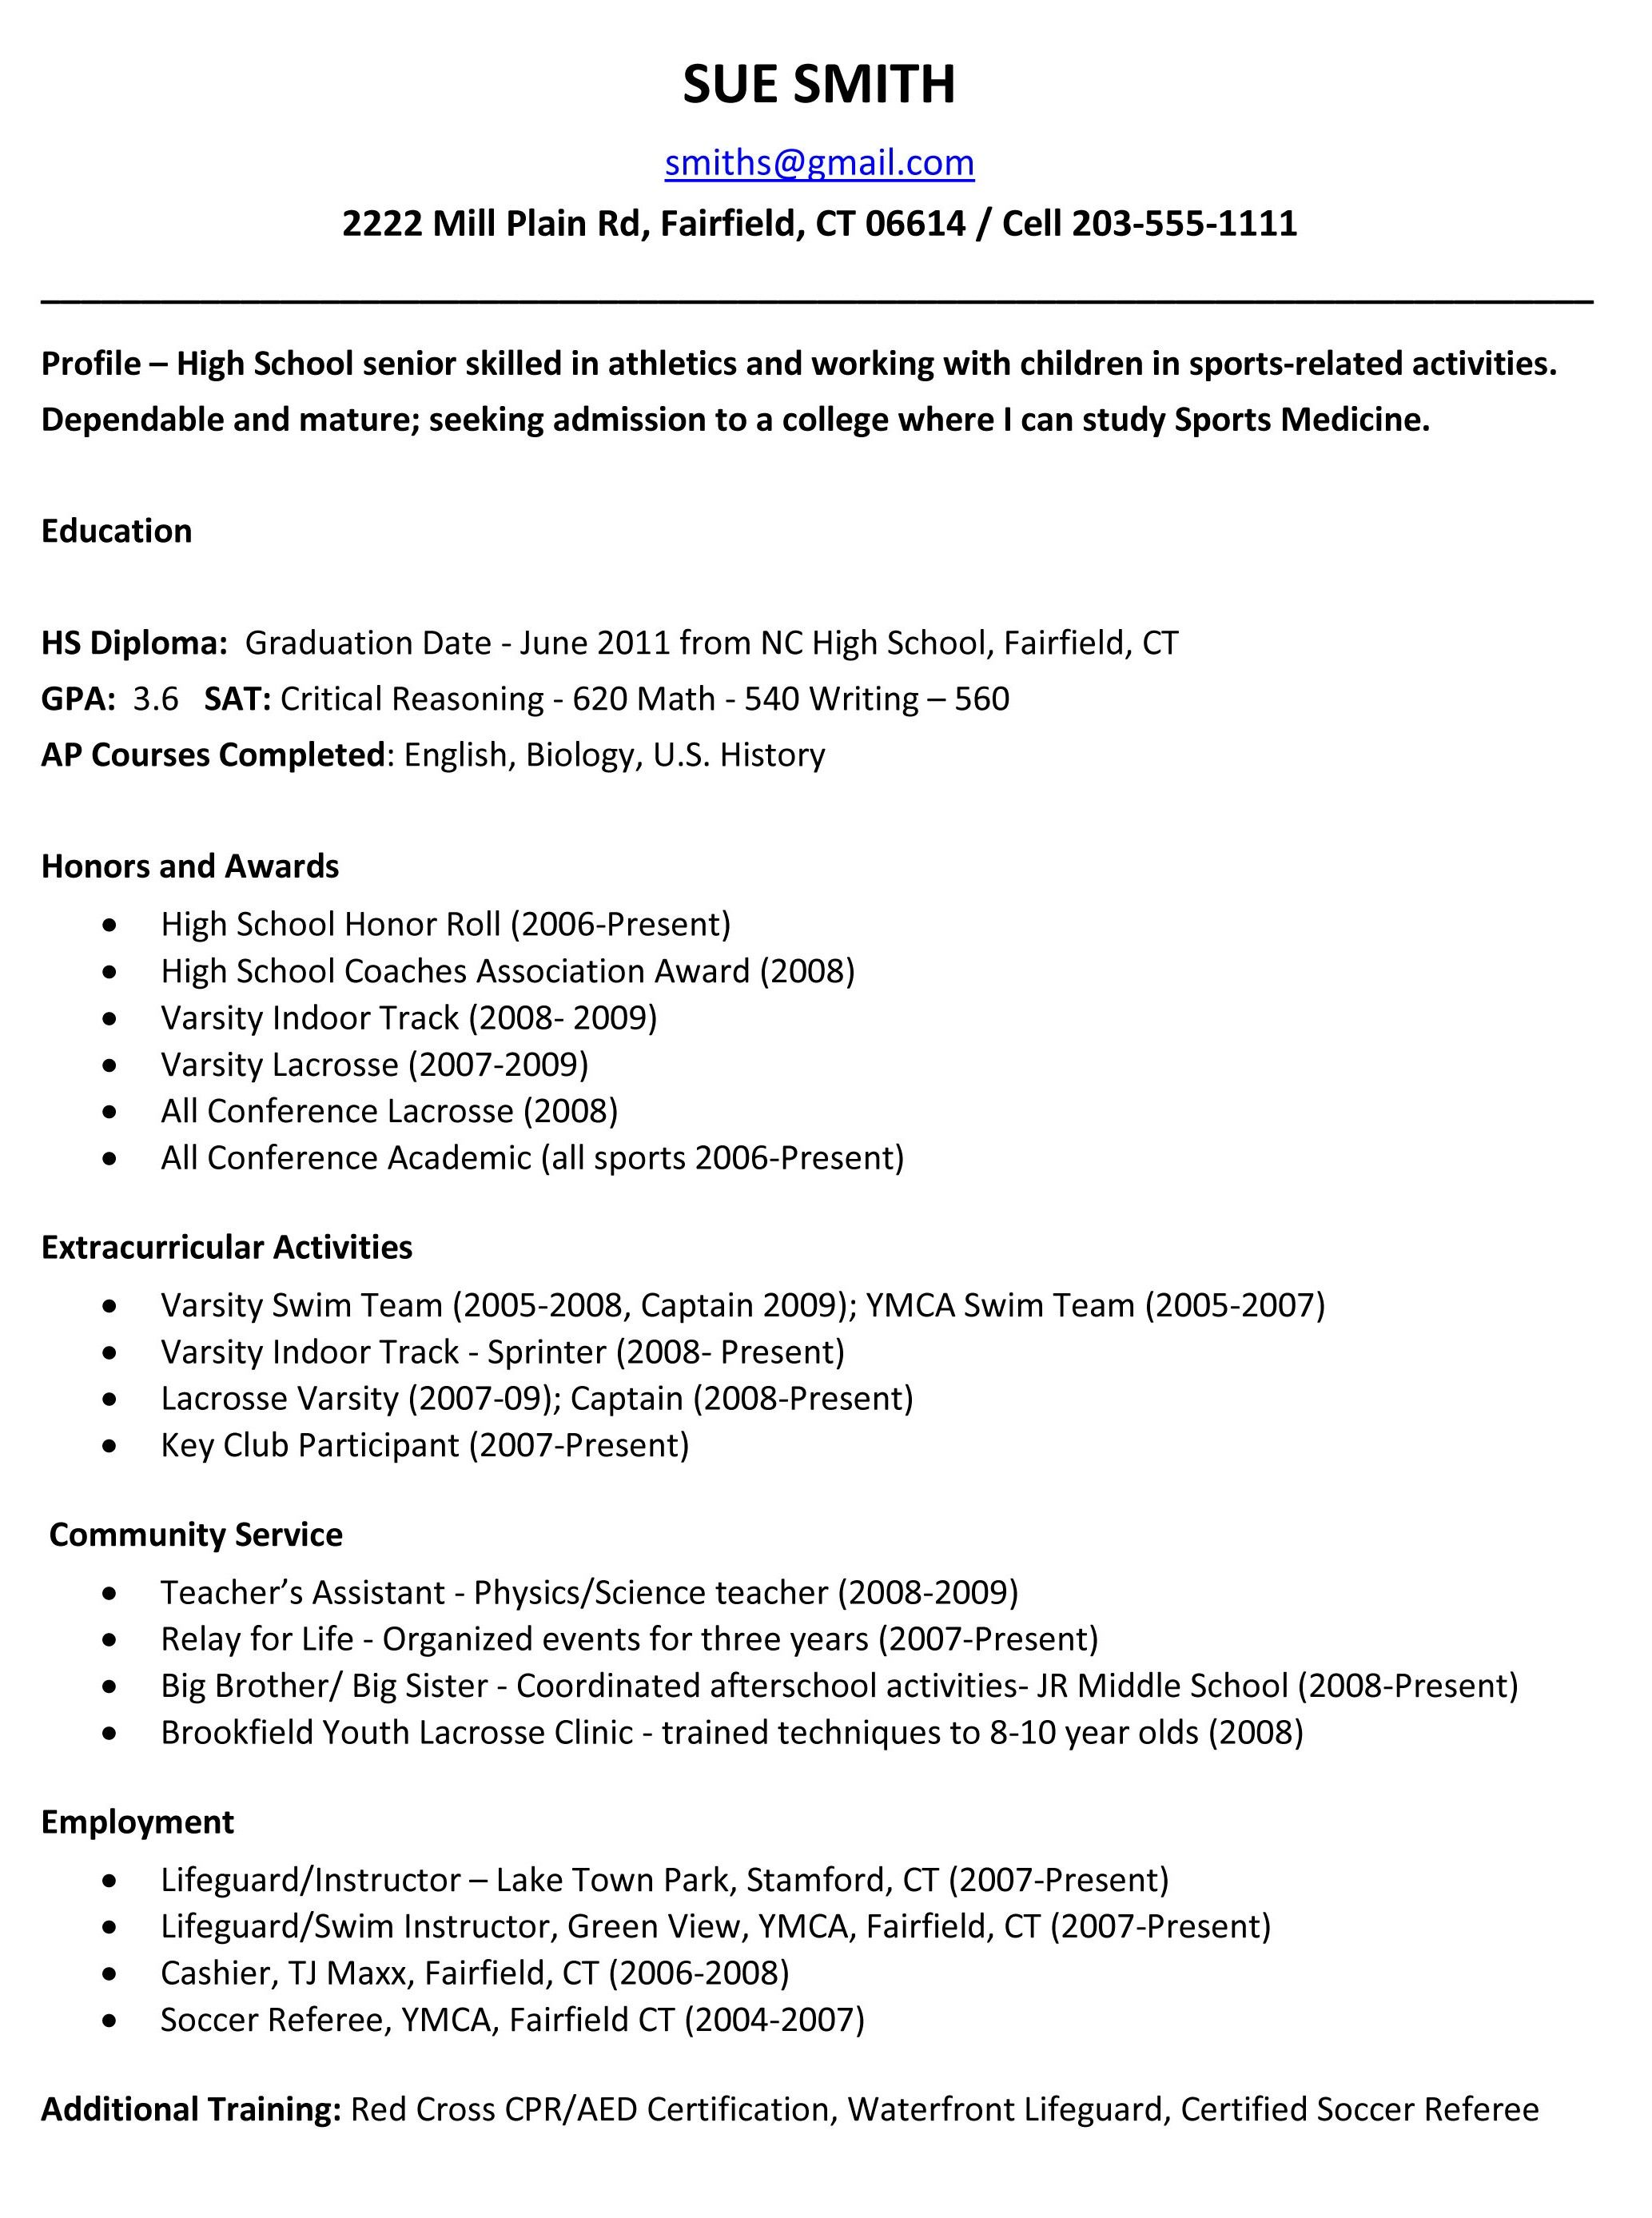 Good Example Resume For High School Students For College Applications School  Resume Templateregularmidwesterners.com | Regularmidwesterners For Resumes For High Schoolers